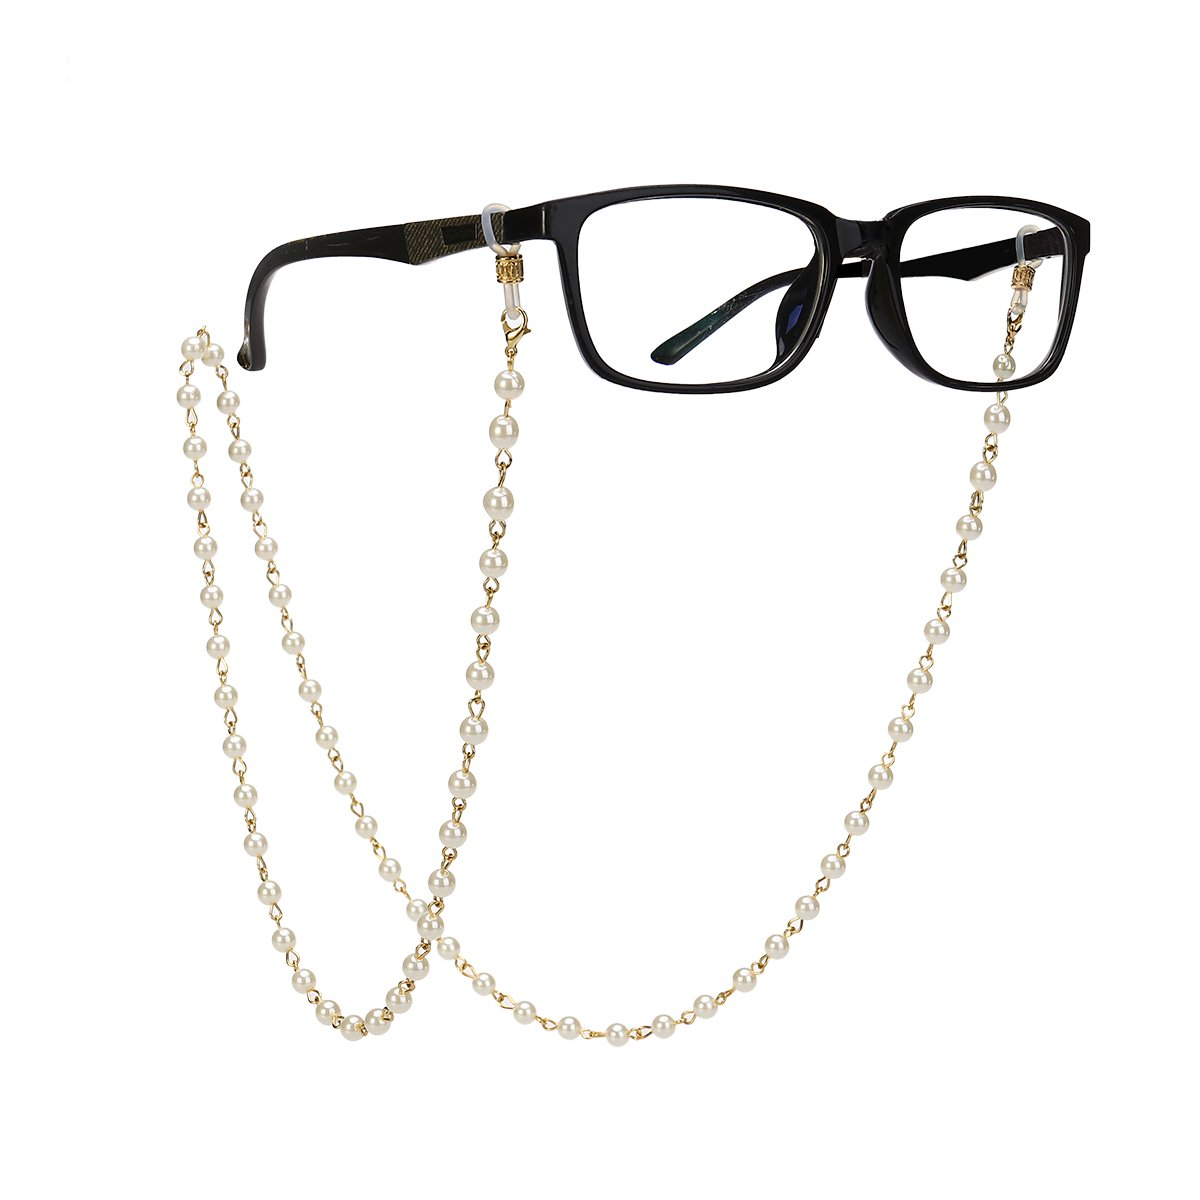 LUOEM Pearls Bead Eyeglass Chain Strap Sunglass Holder Lanyard Necklace Spectacles Holder Sunglasses Neck Cord Strap 64ZF153023U2SB95094